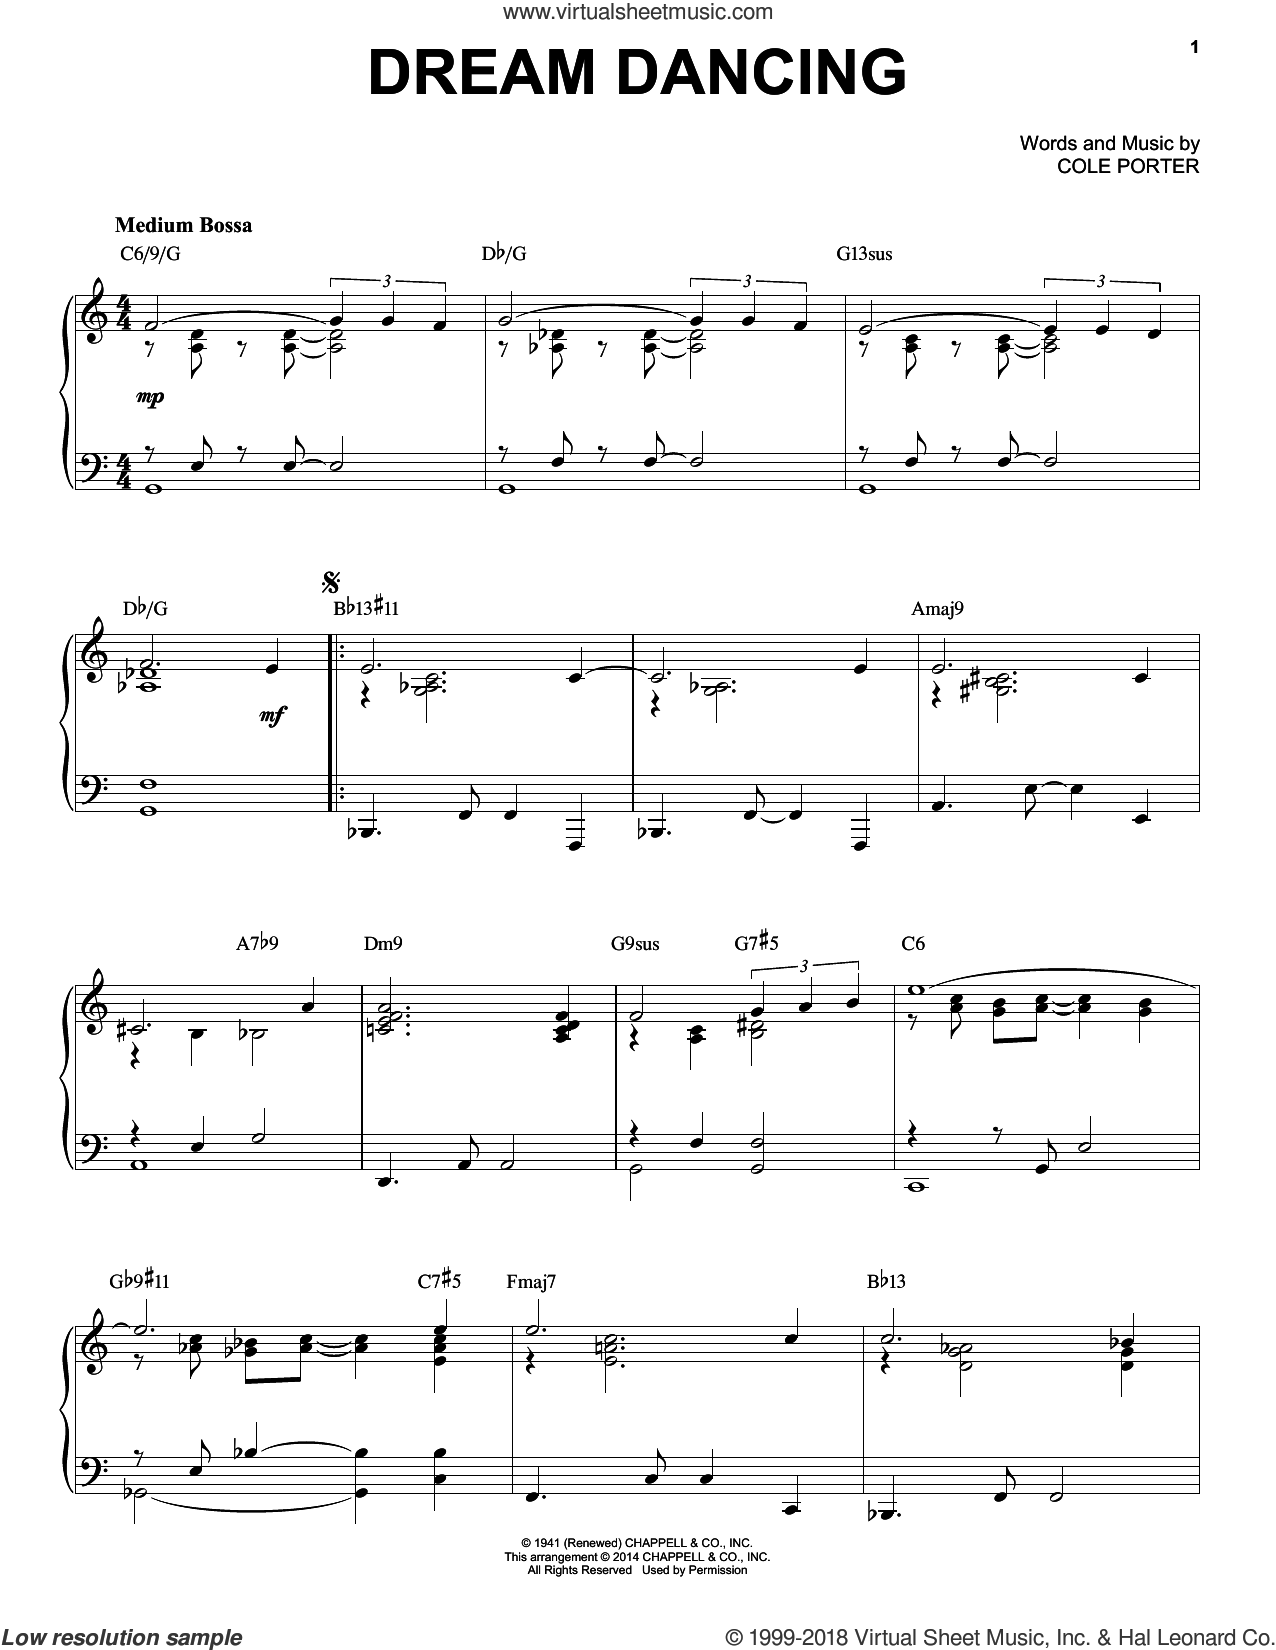 Dream Dancing sheet music for piano solo by Cole Porter and Fred Astaire, intermediate skill level